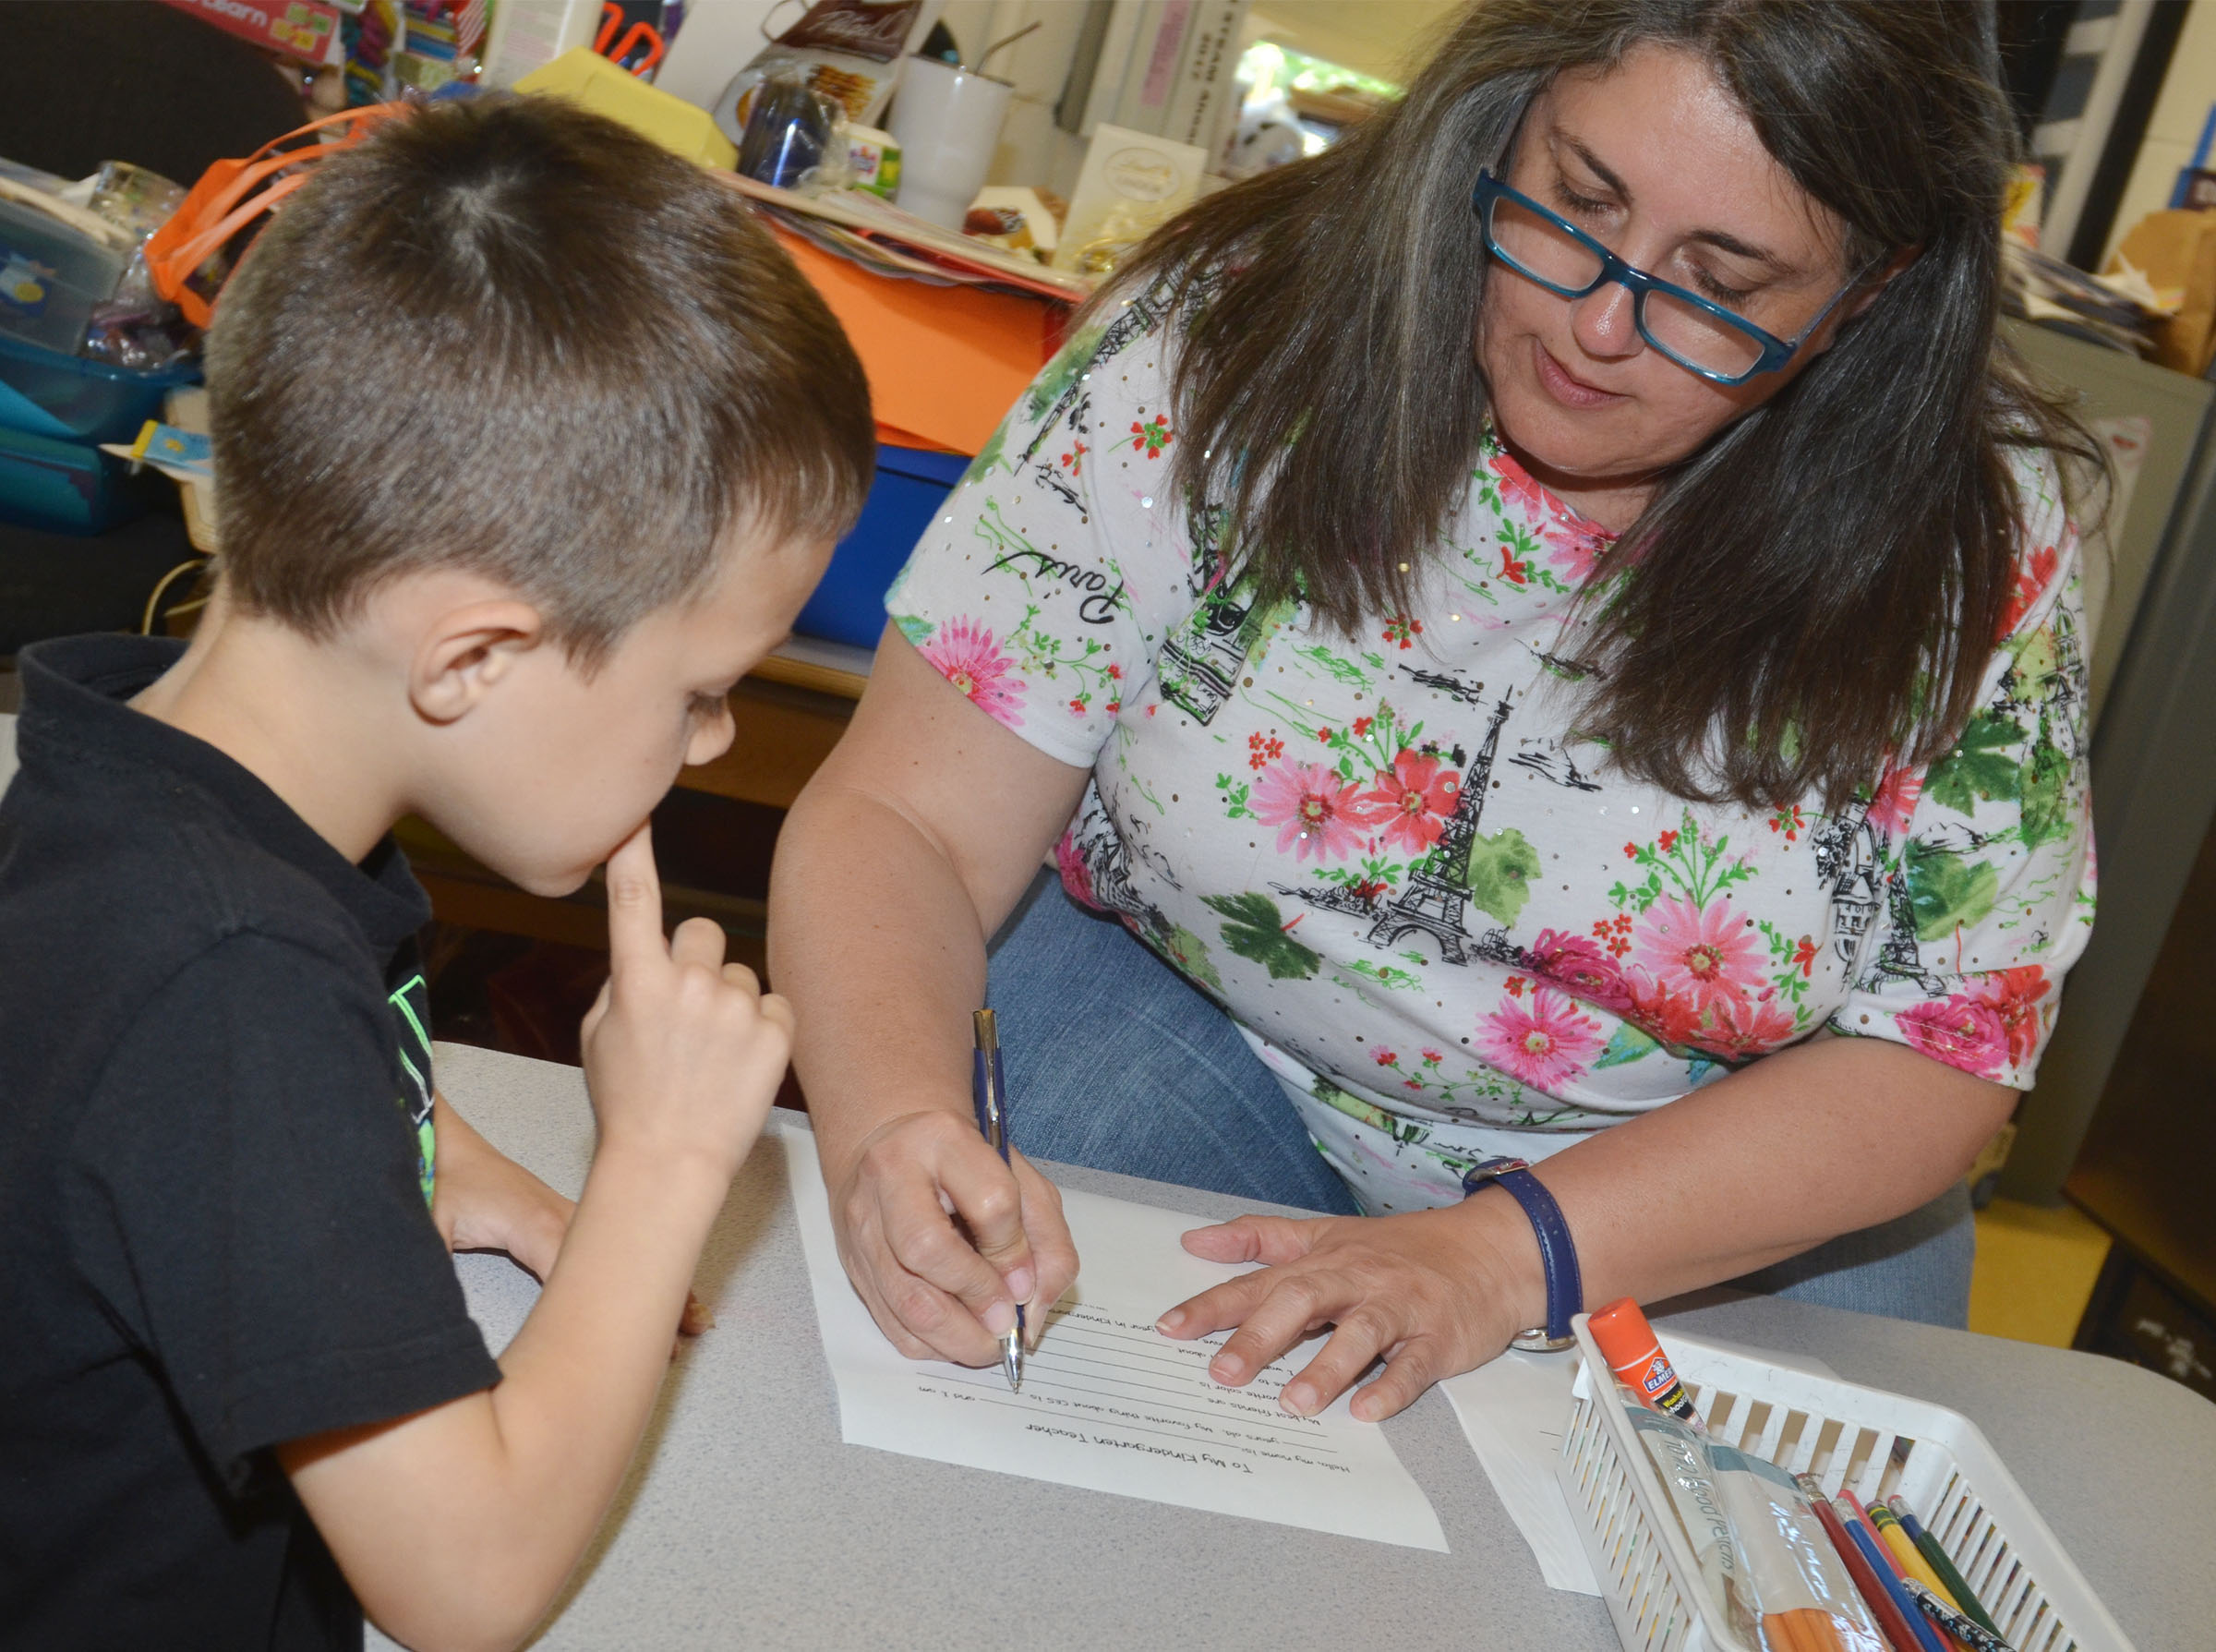 CES preschool student Levi Ritchie answers questions with teacher Sherry Cowherd as they write Ritchie's letter to his kindergarten teacher.